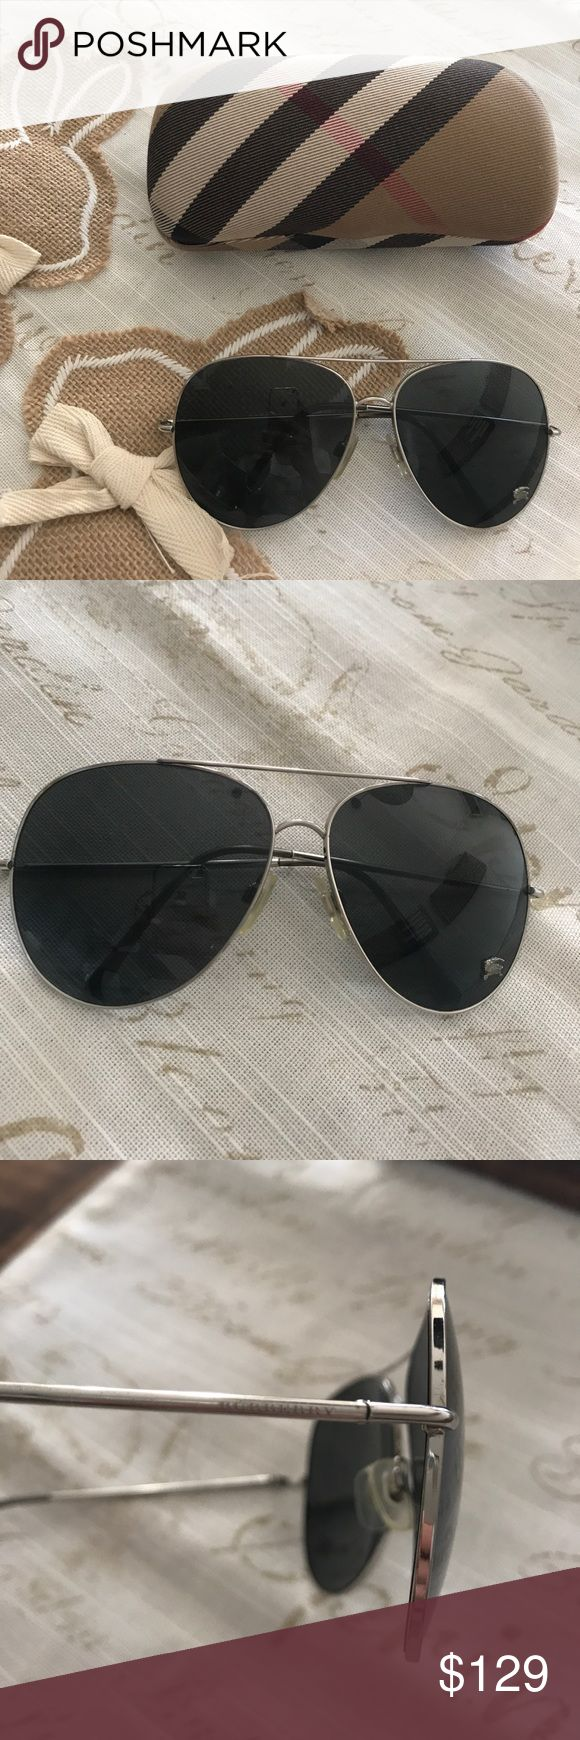 burberry sunglasses on sale c9k7  Burberry sunglasses aviator/ perfect condition